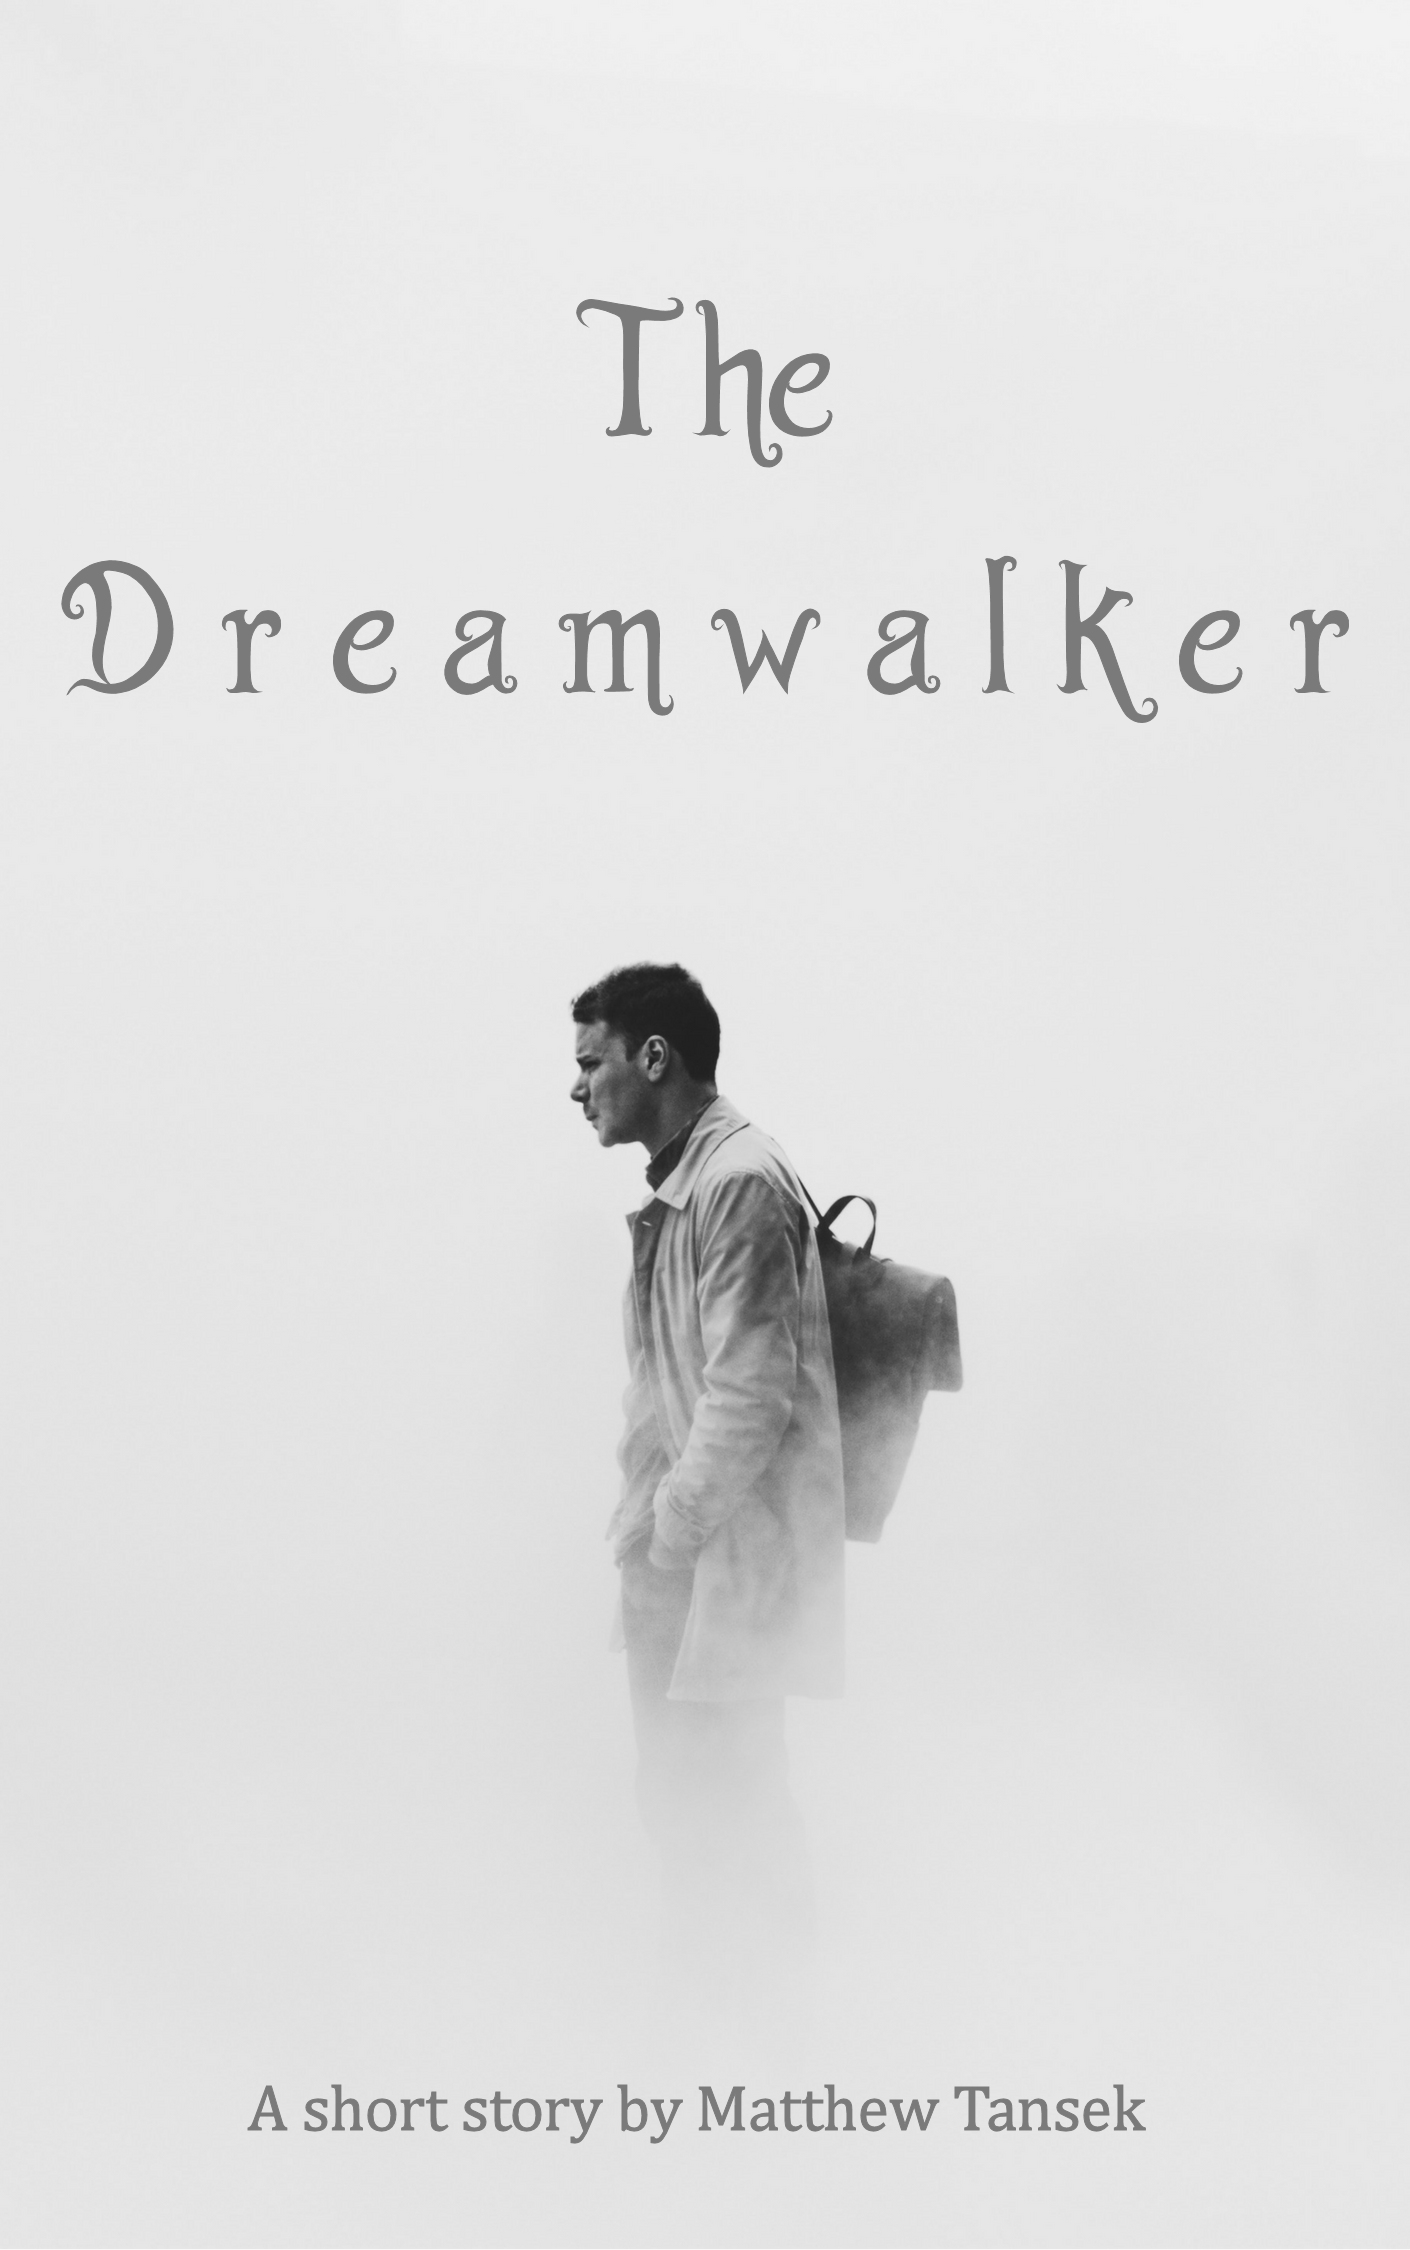 On writing the Dreamwalker